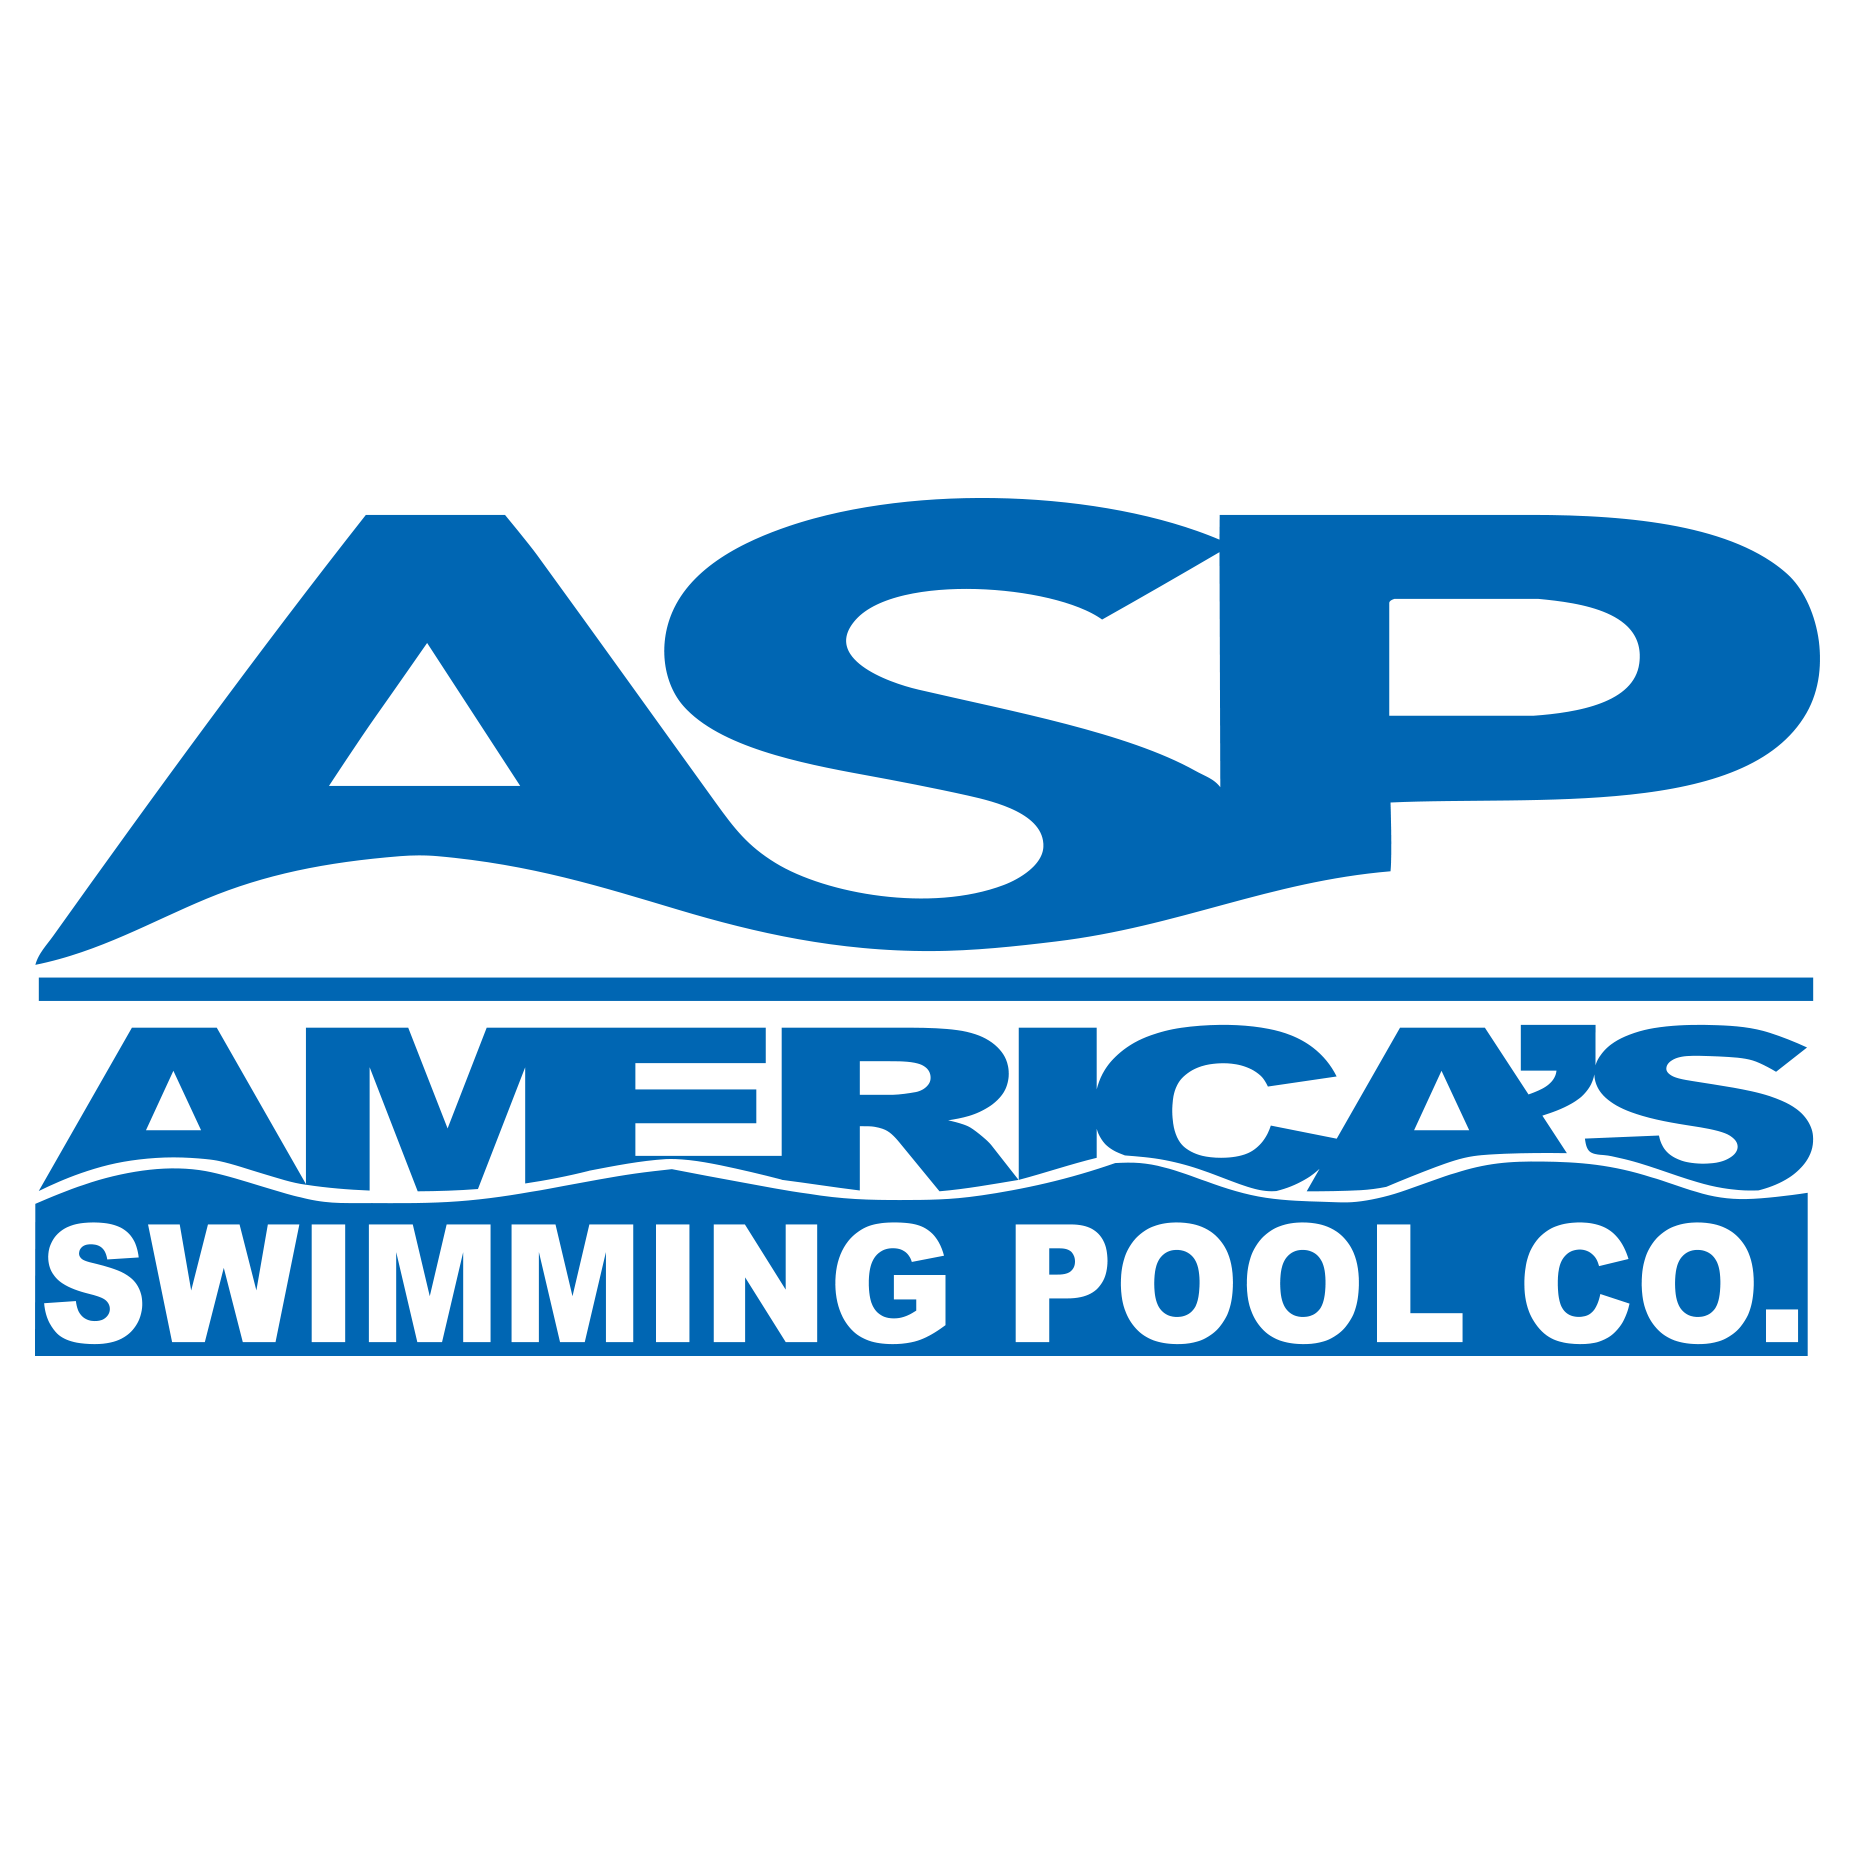 America S Swimming Pool Company Continues Its Nationwide